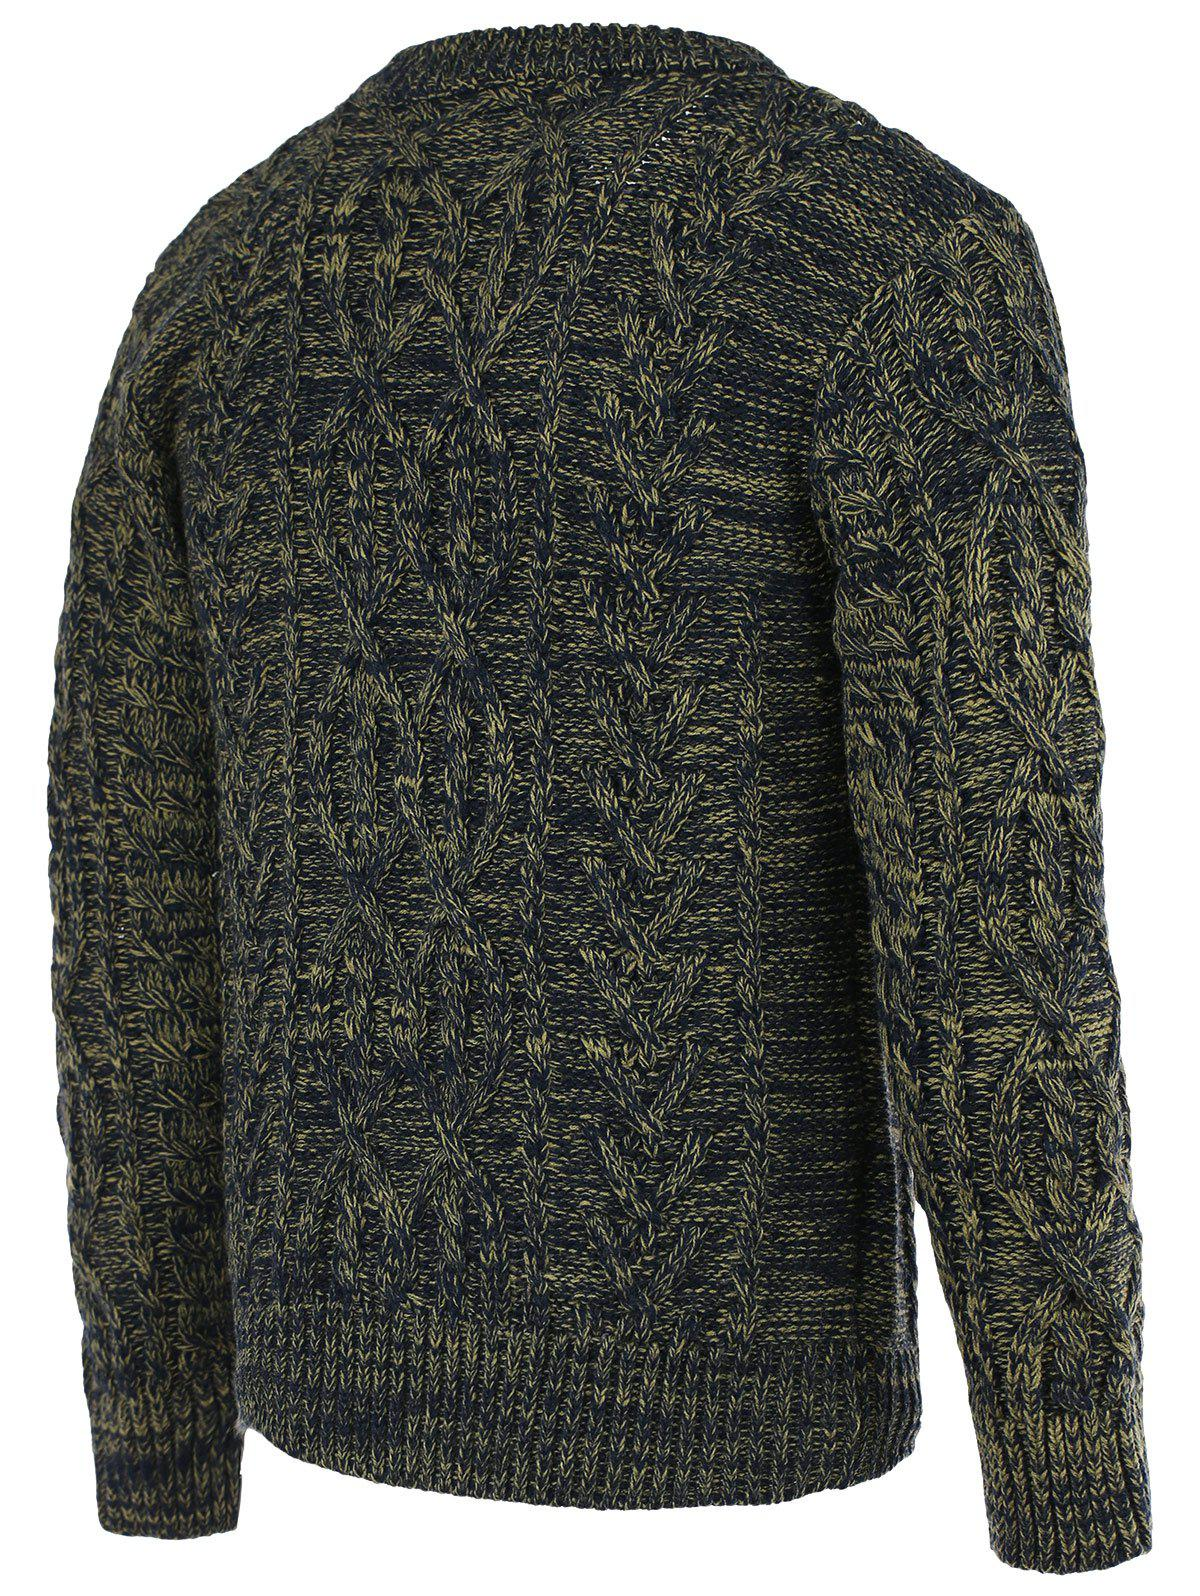 Braid Pattern Heathered Crew Neck Long Sleeve Men's Sweater - COLORMIX 2XL